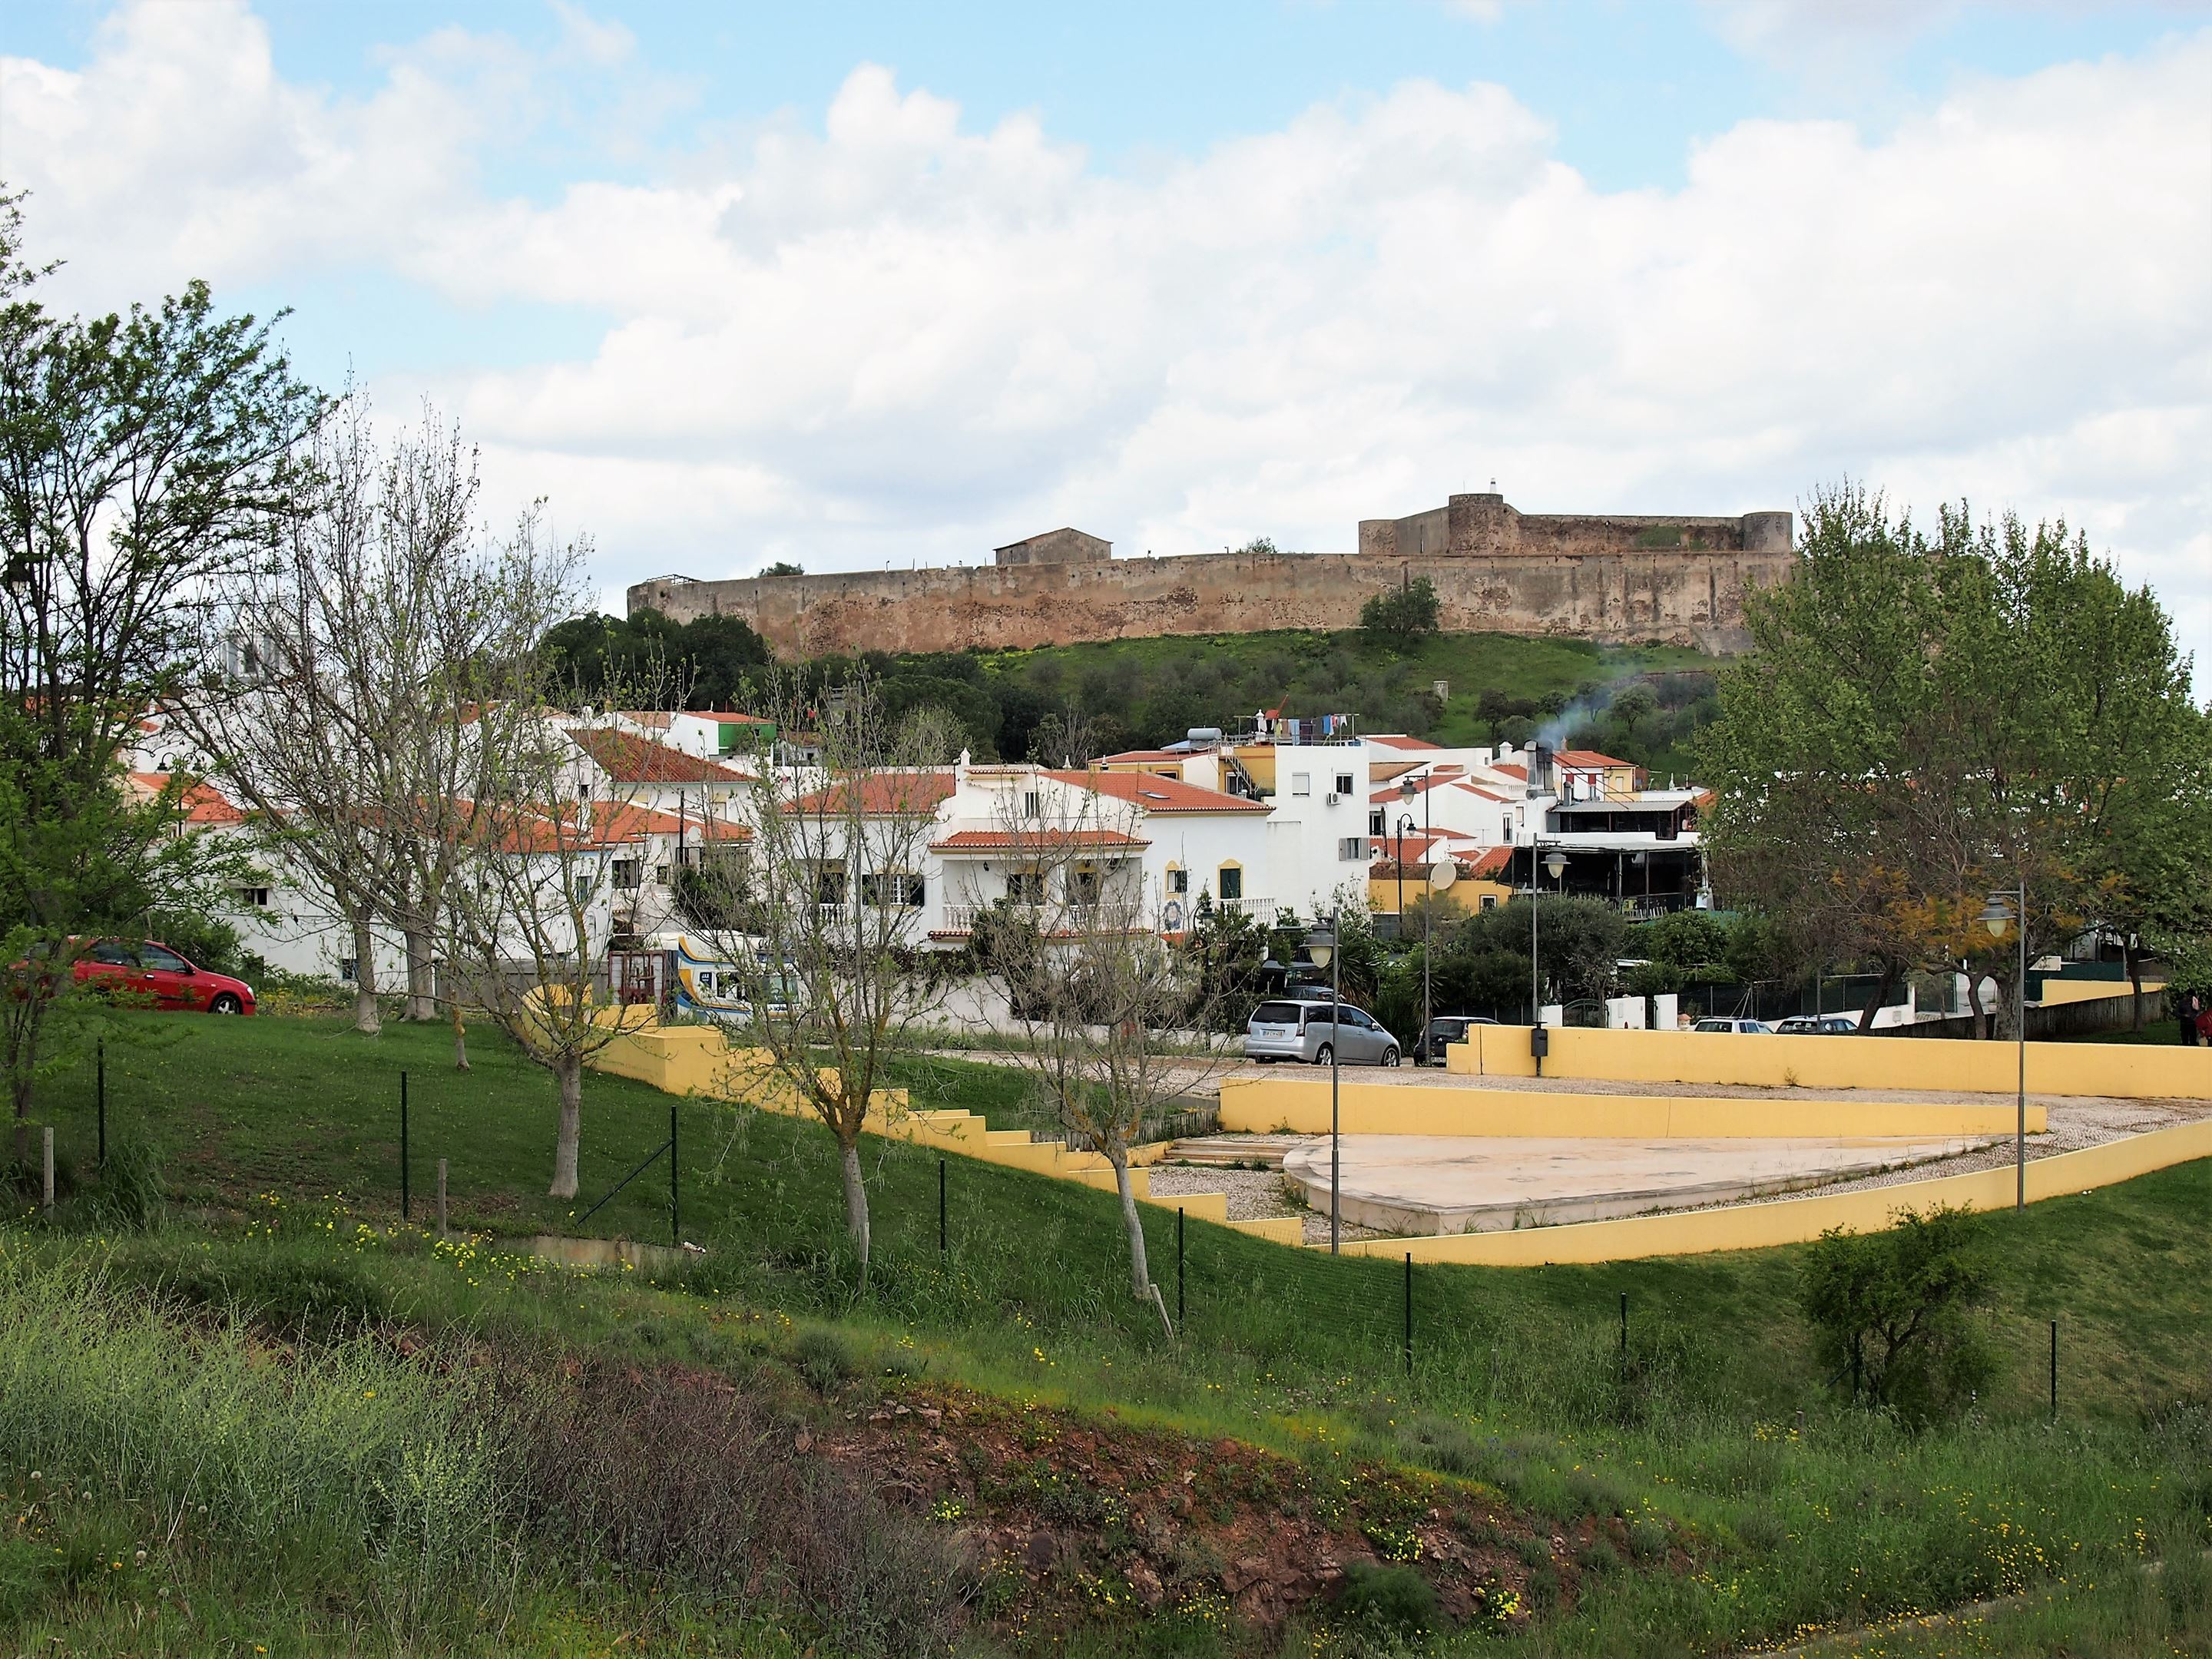 The Fort of São Sebastião with the town of Castro Marim below.